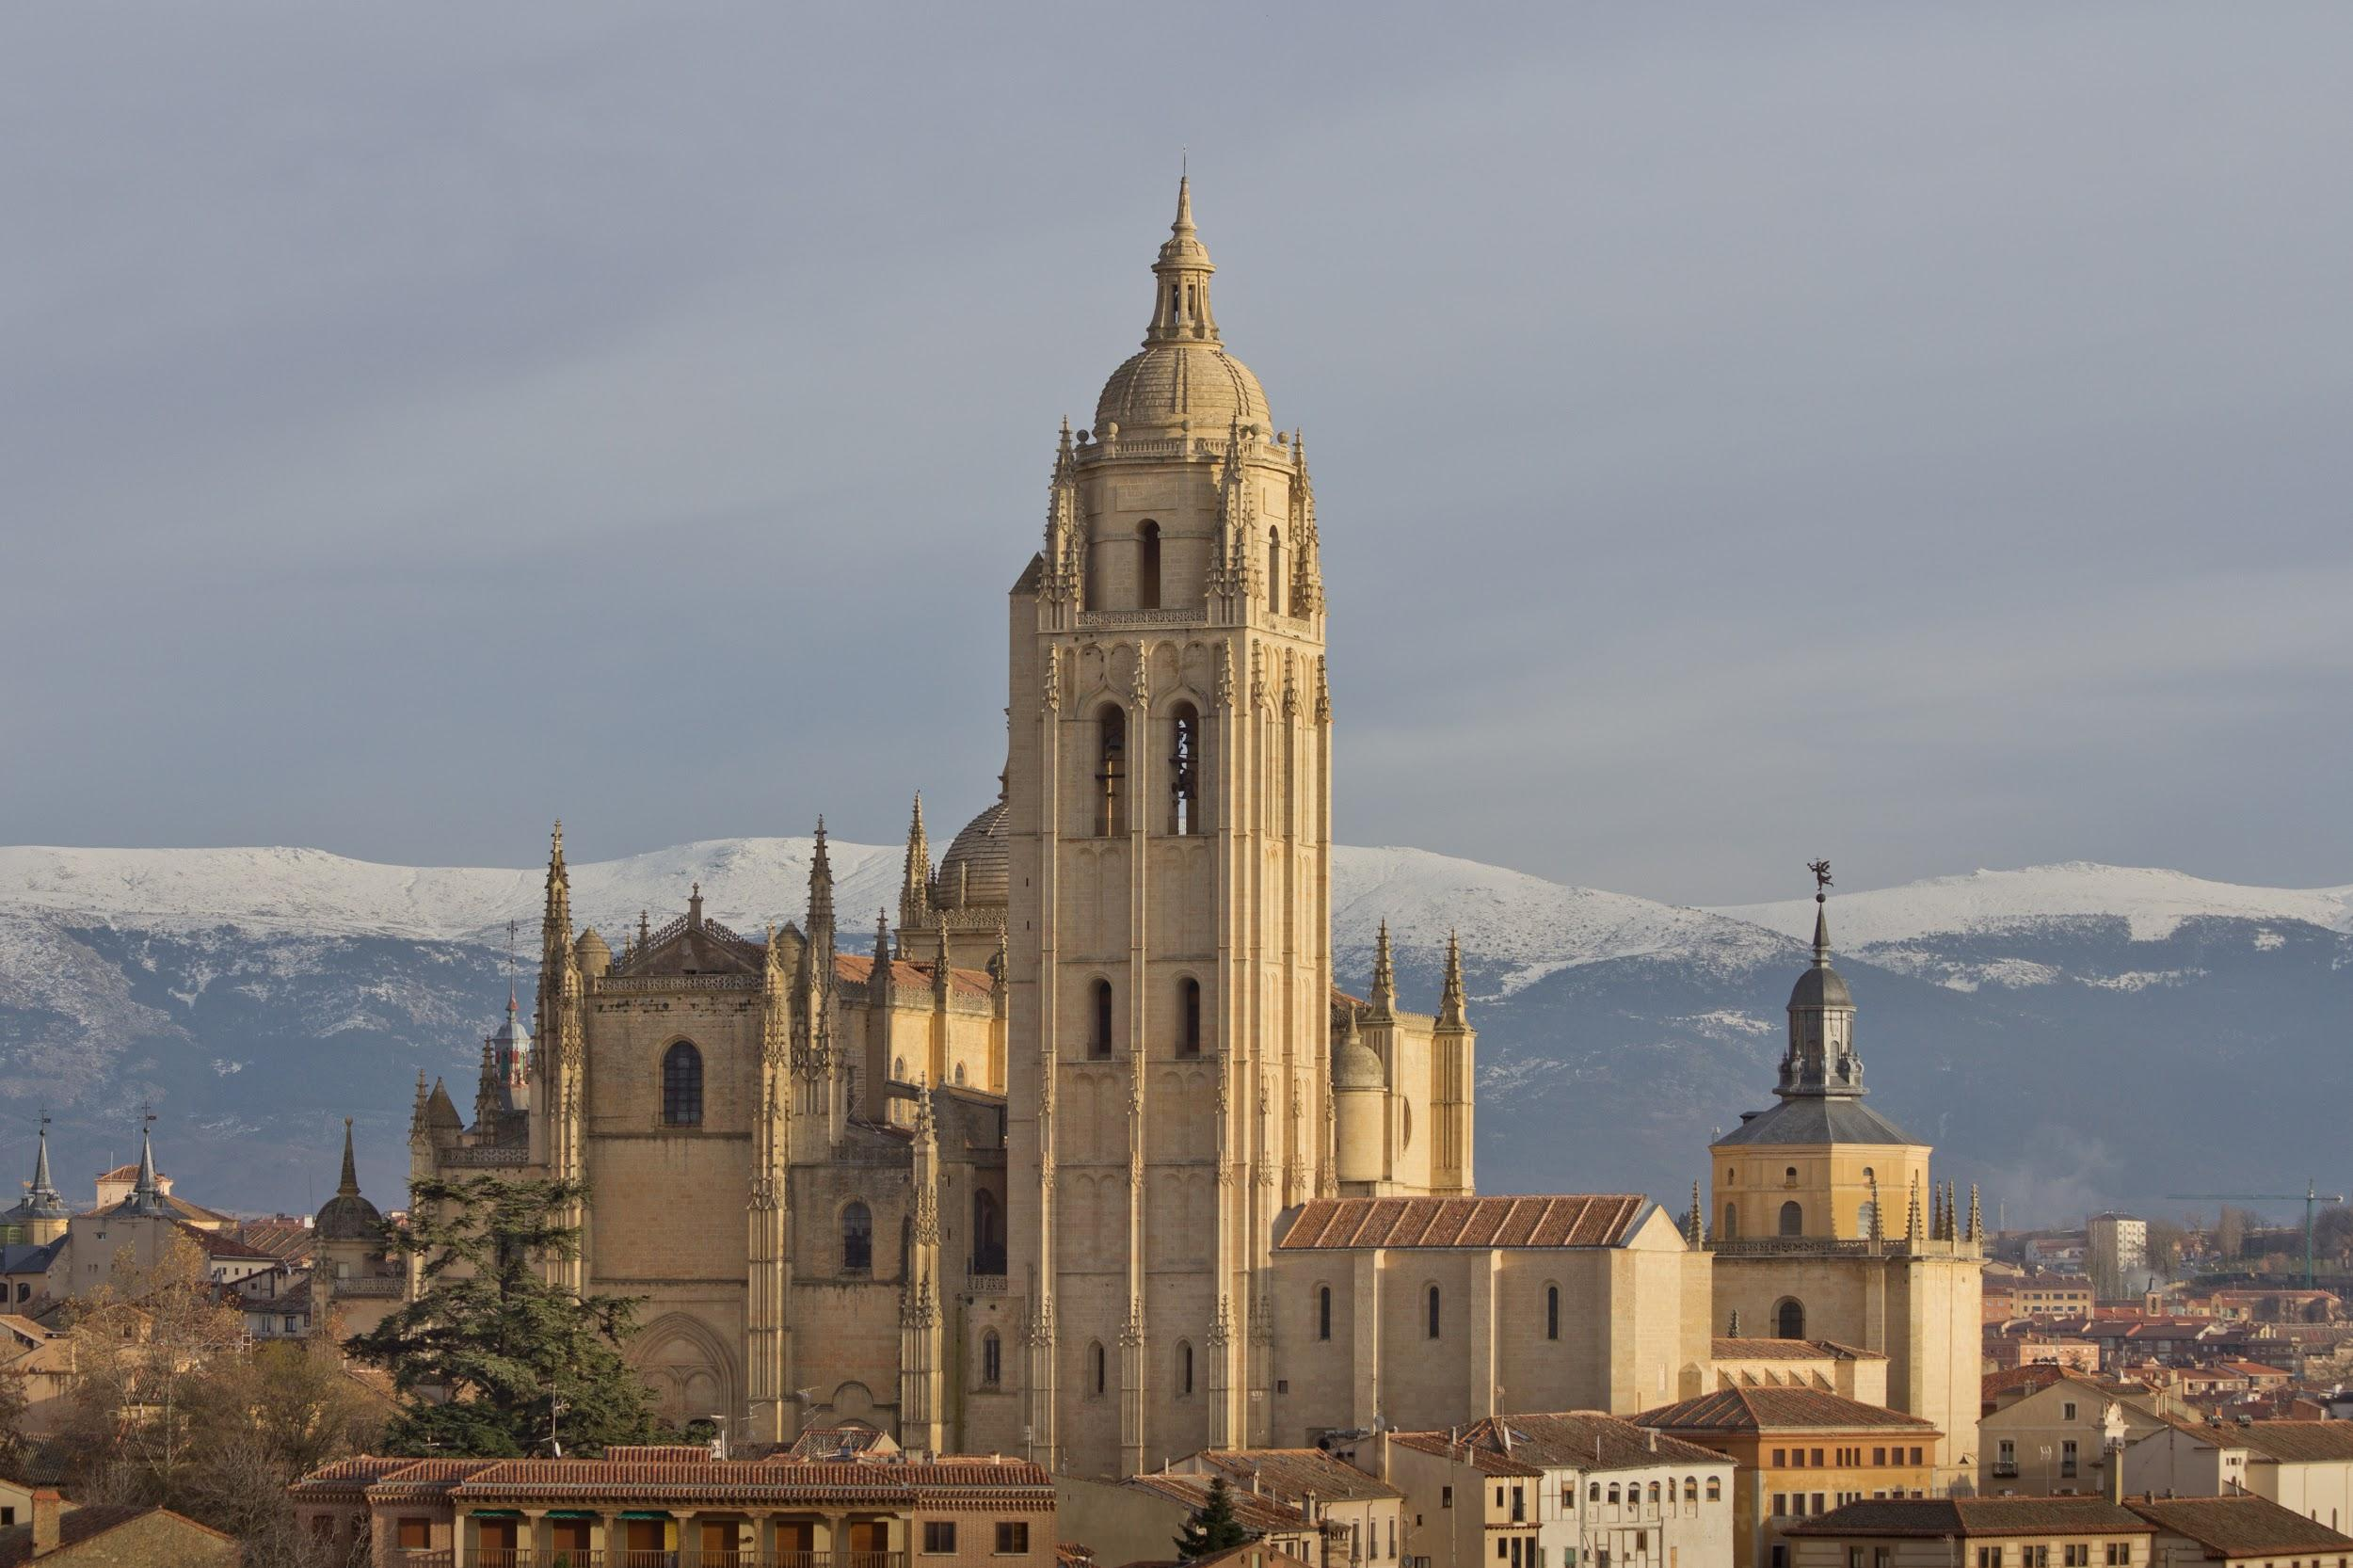 Fig. 1: Saint Mary's cathedral of Segovia.